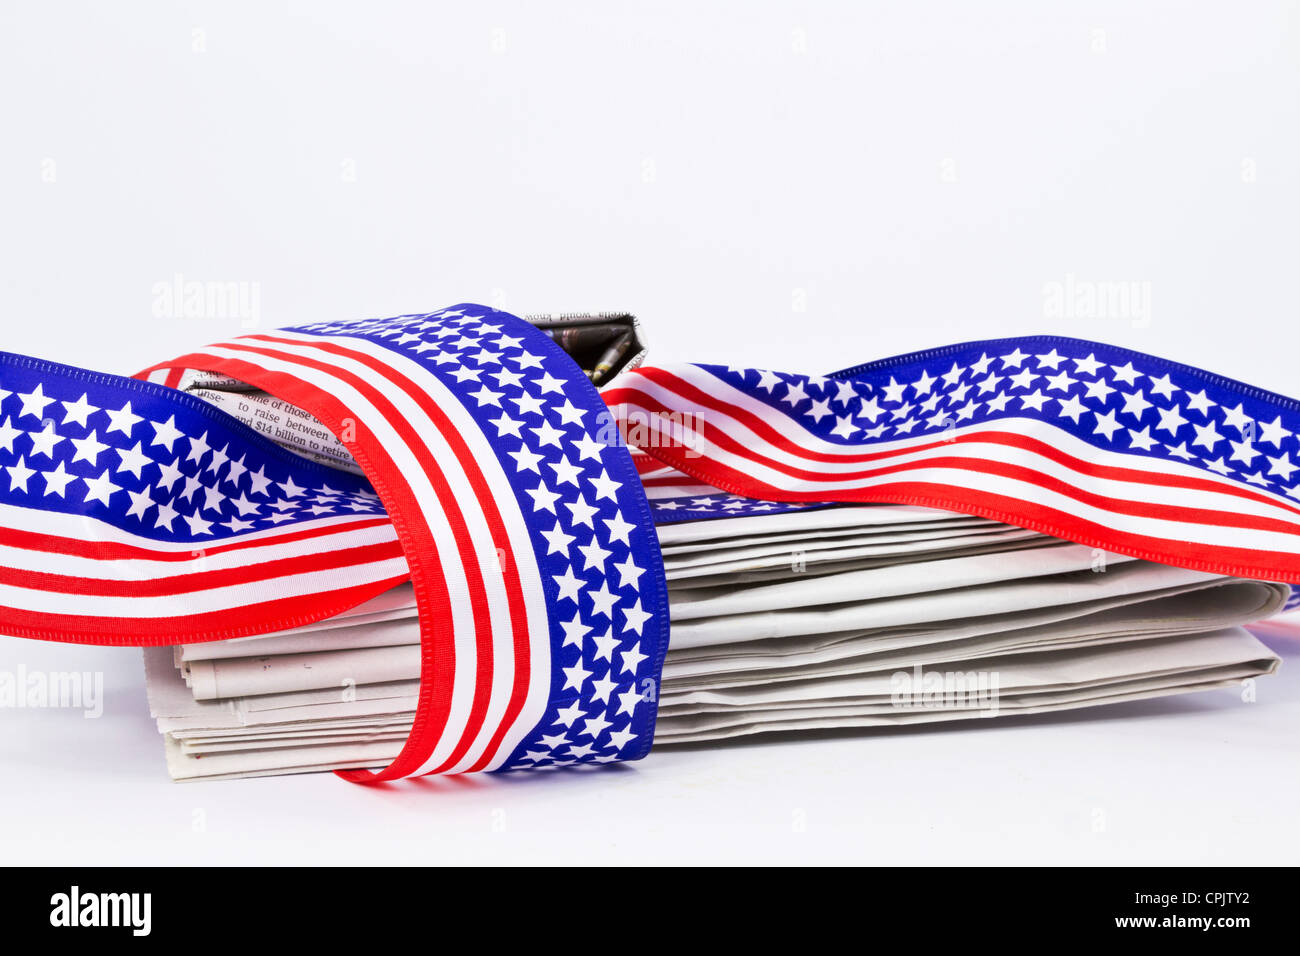 Stack Of Newspaper Loosely Wrapped In Usa Flag Colors And Symbols Of